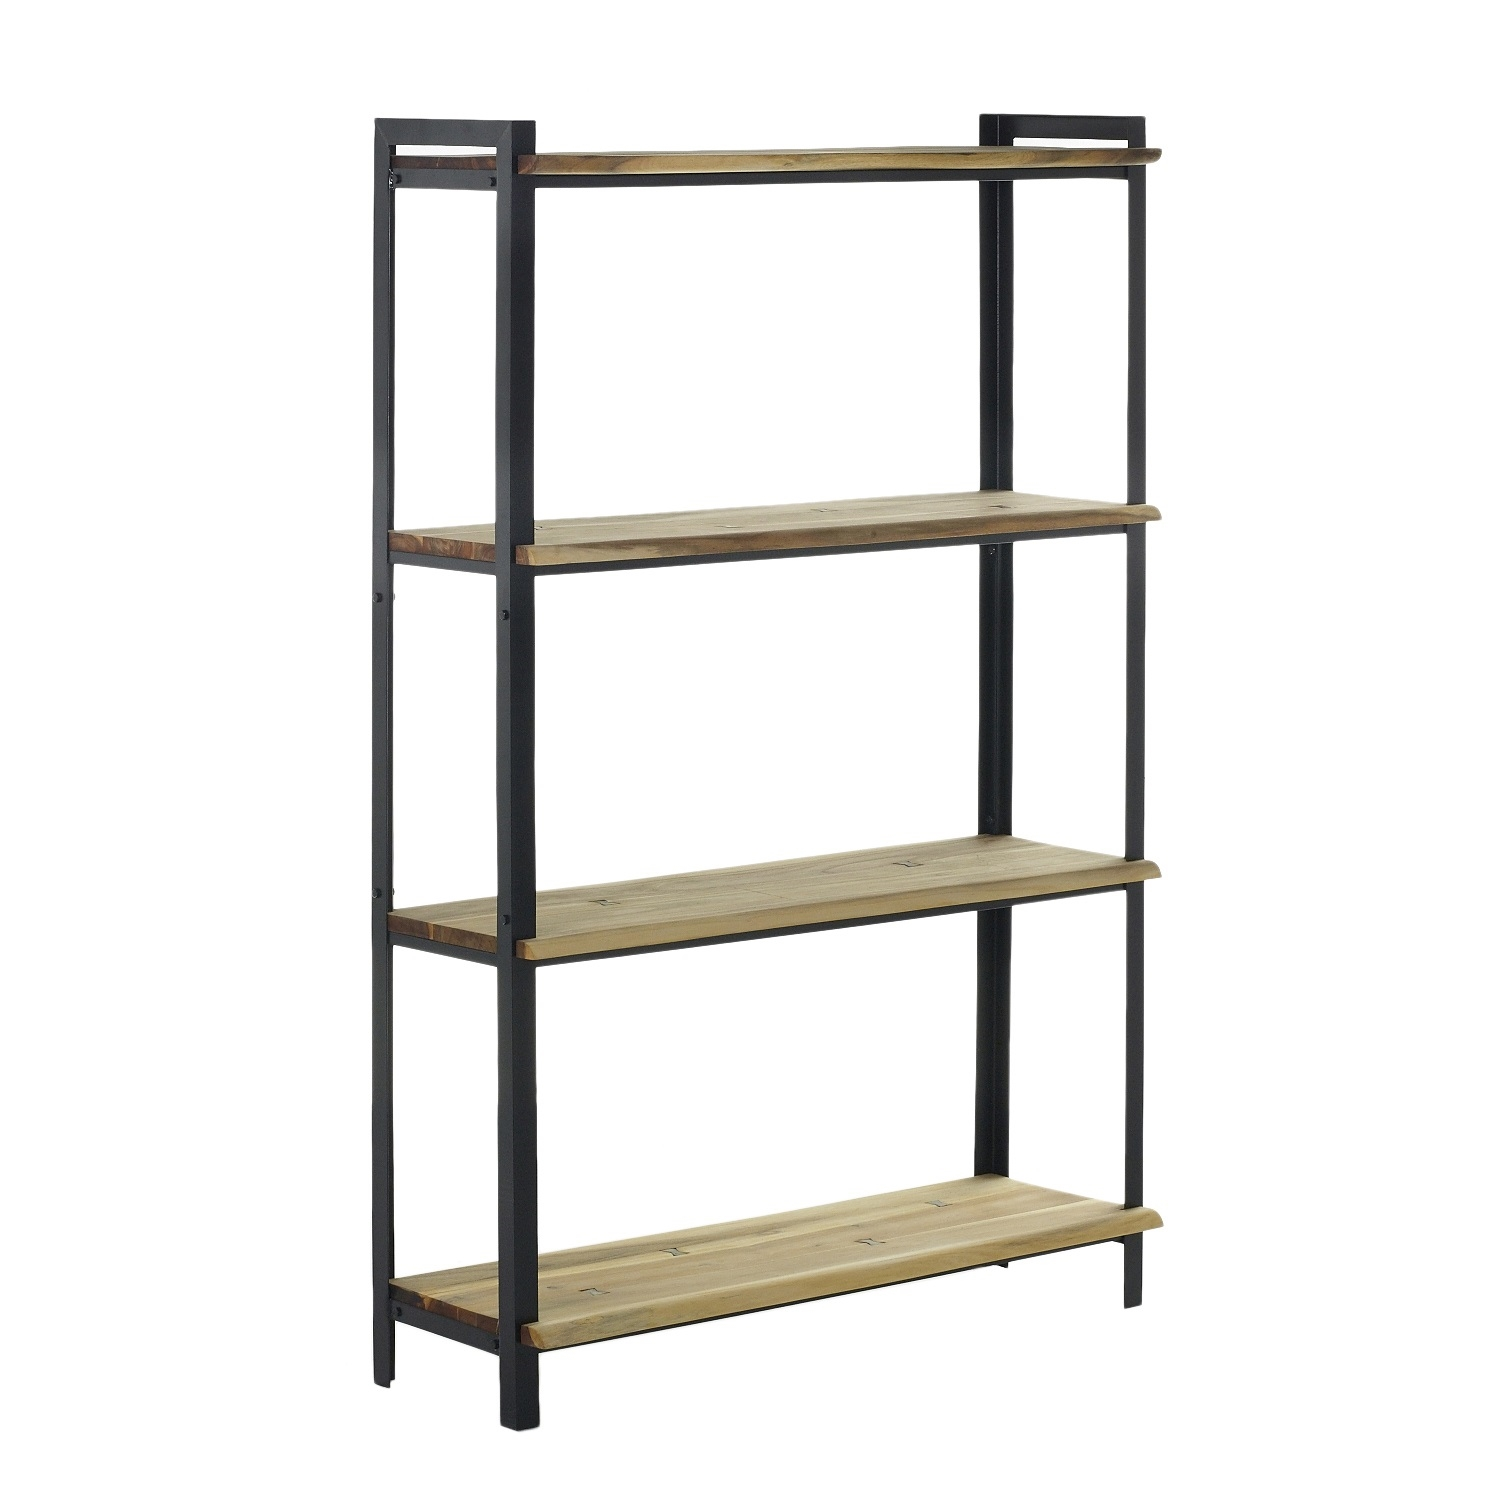 Parksdale Acacia Wood And Metal Frame Shelf